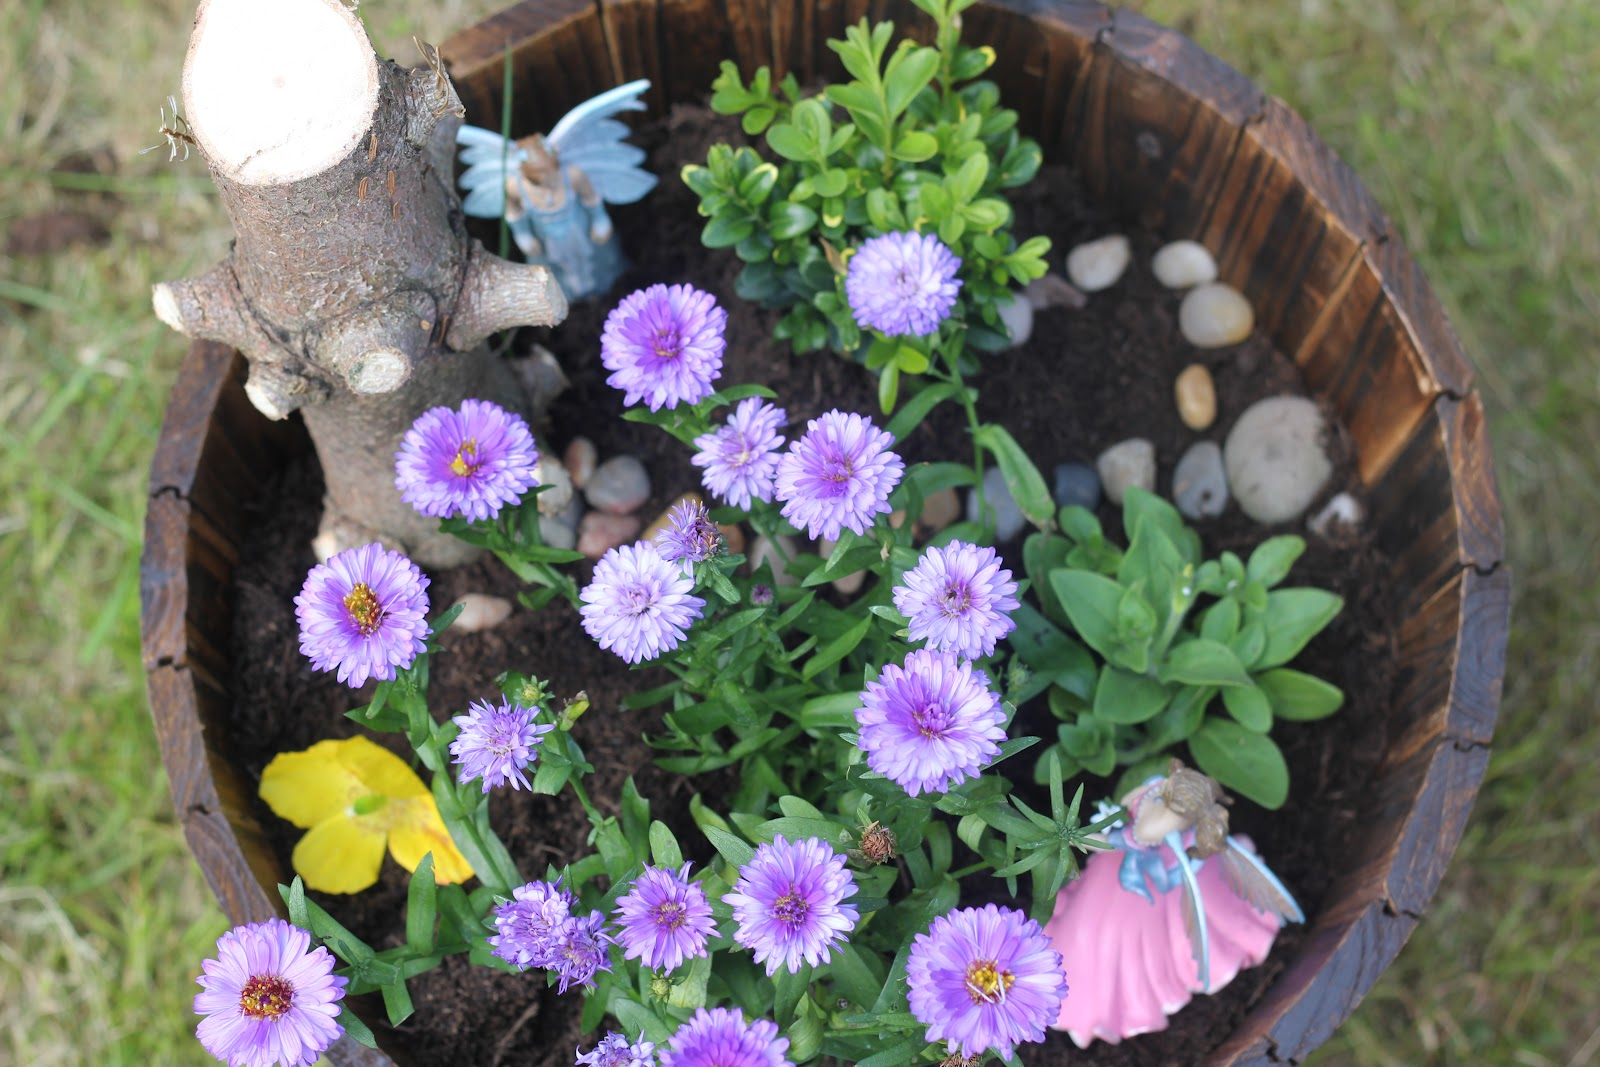 To Create This Fairy Garden We Used: